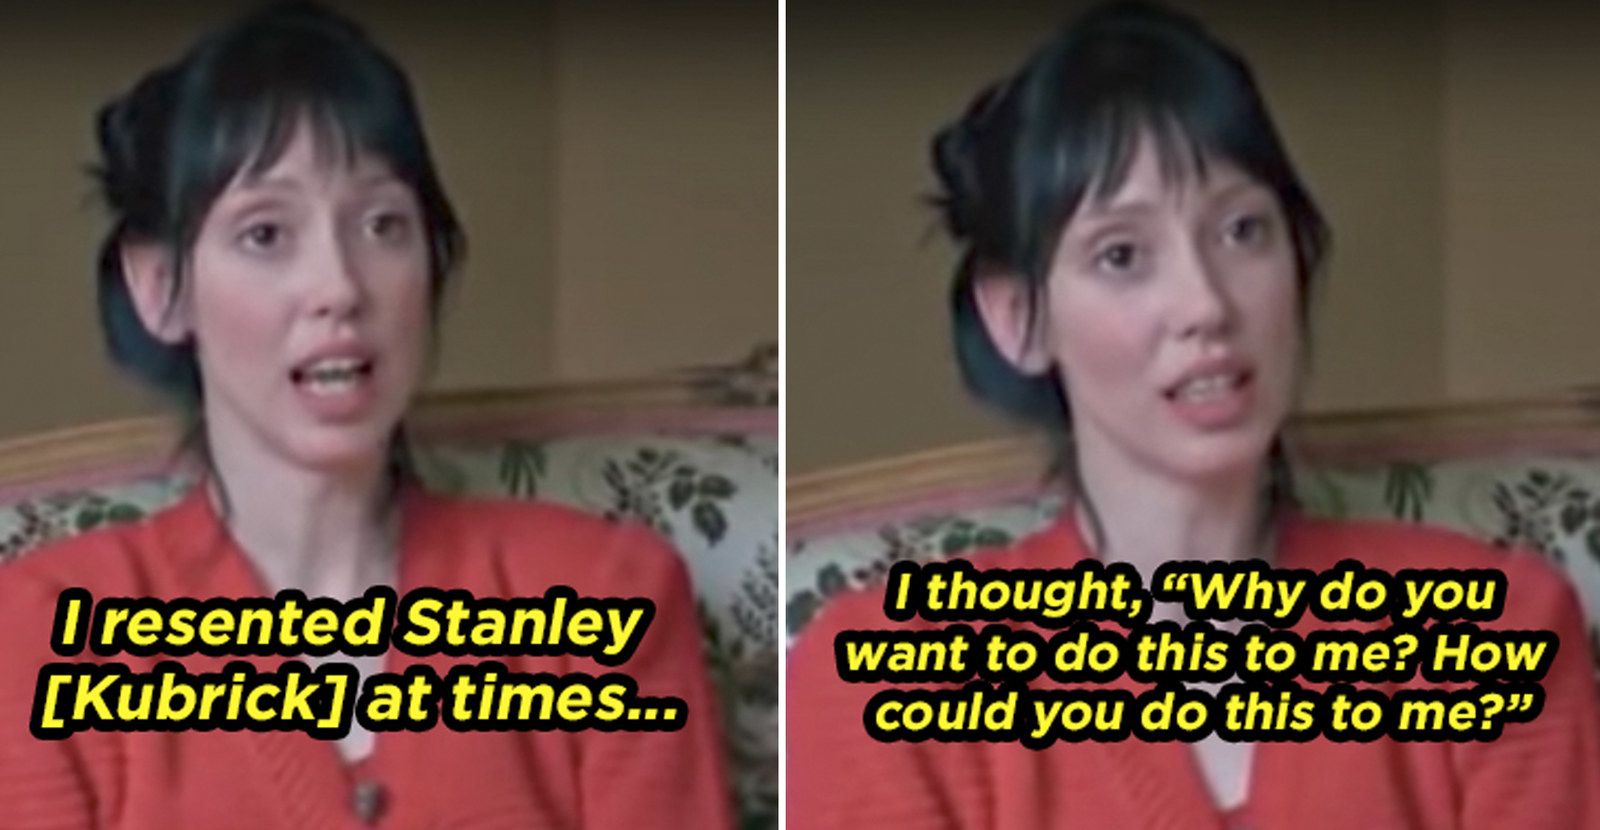 She was genuinely terrified while filming, and had a mental breakdown after the movie due to the stress and torment Stanley Kubrick put her through.—amyk4